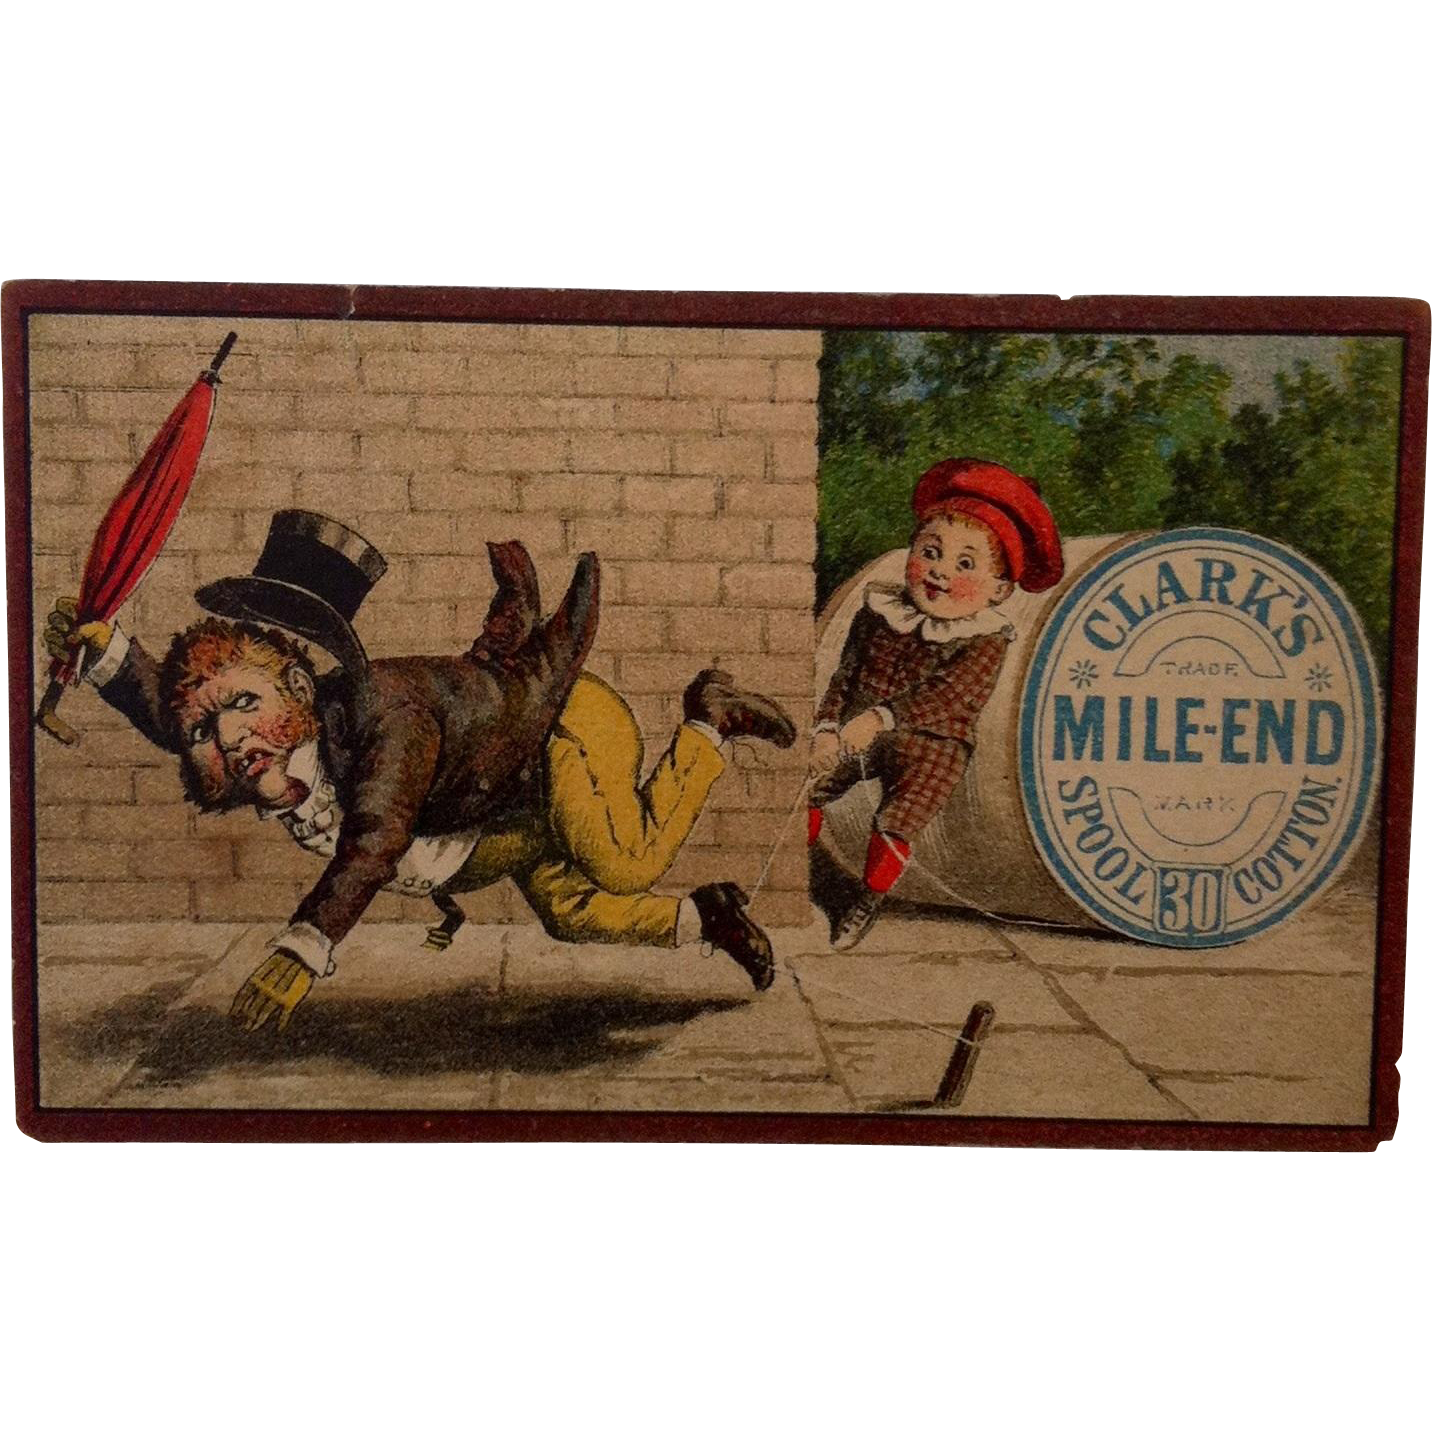 "Clark's Mile End ""Boy Tripping Man"" Trade Card"